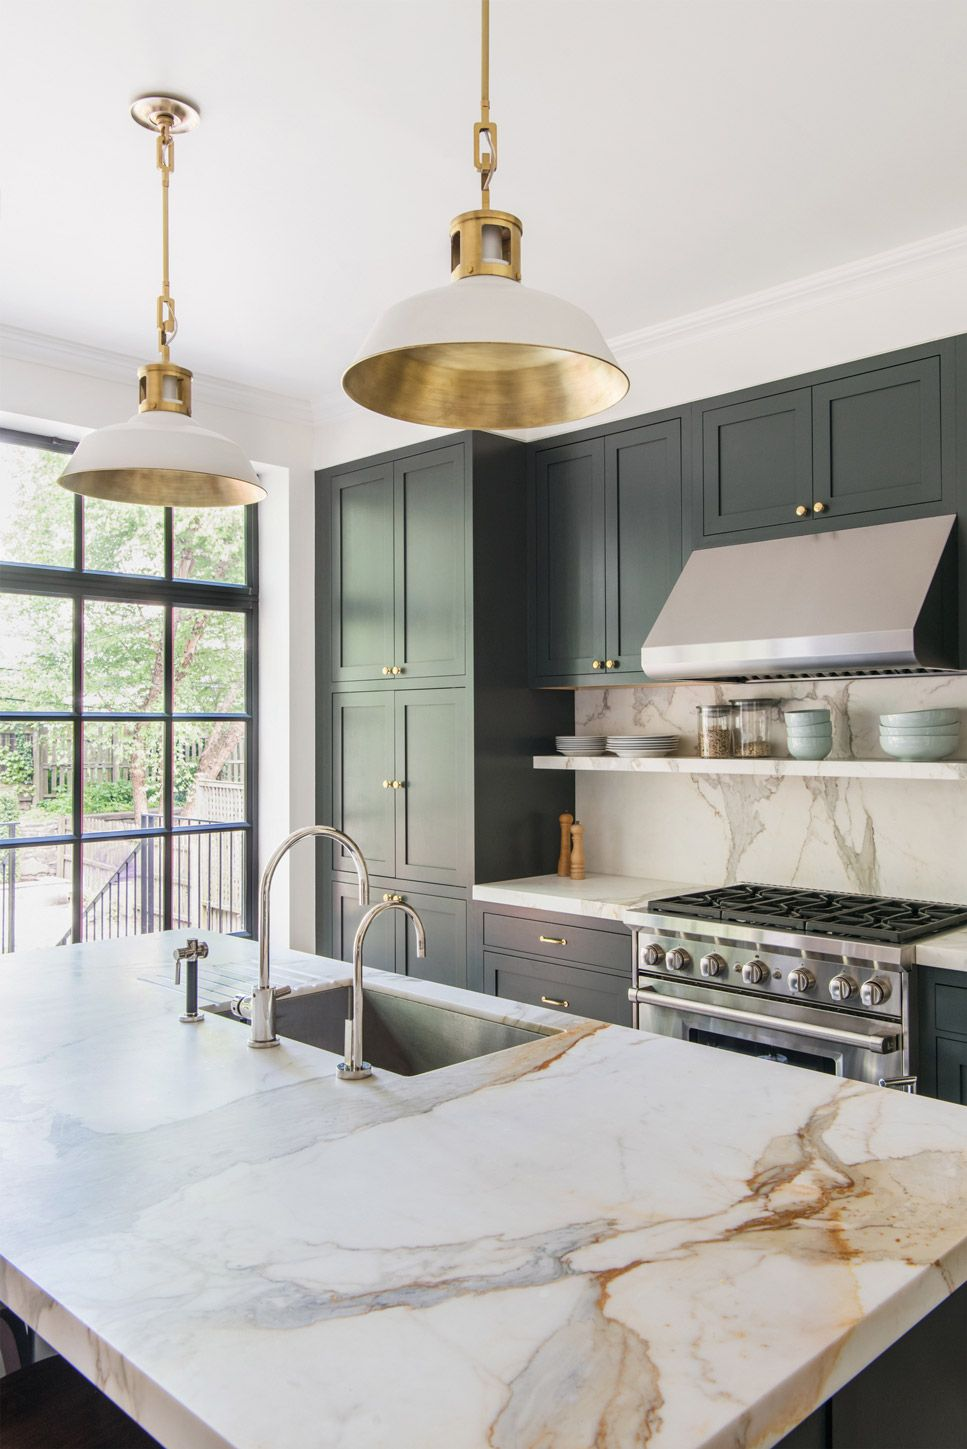 Küchendesign grün check out this image from the urban electric co  kitchen